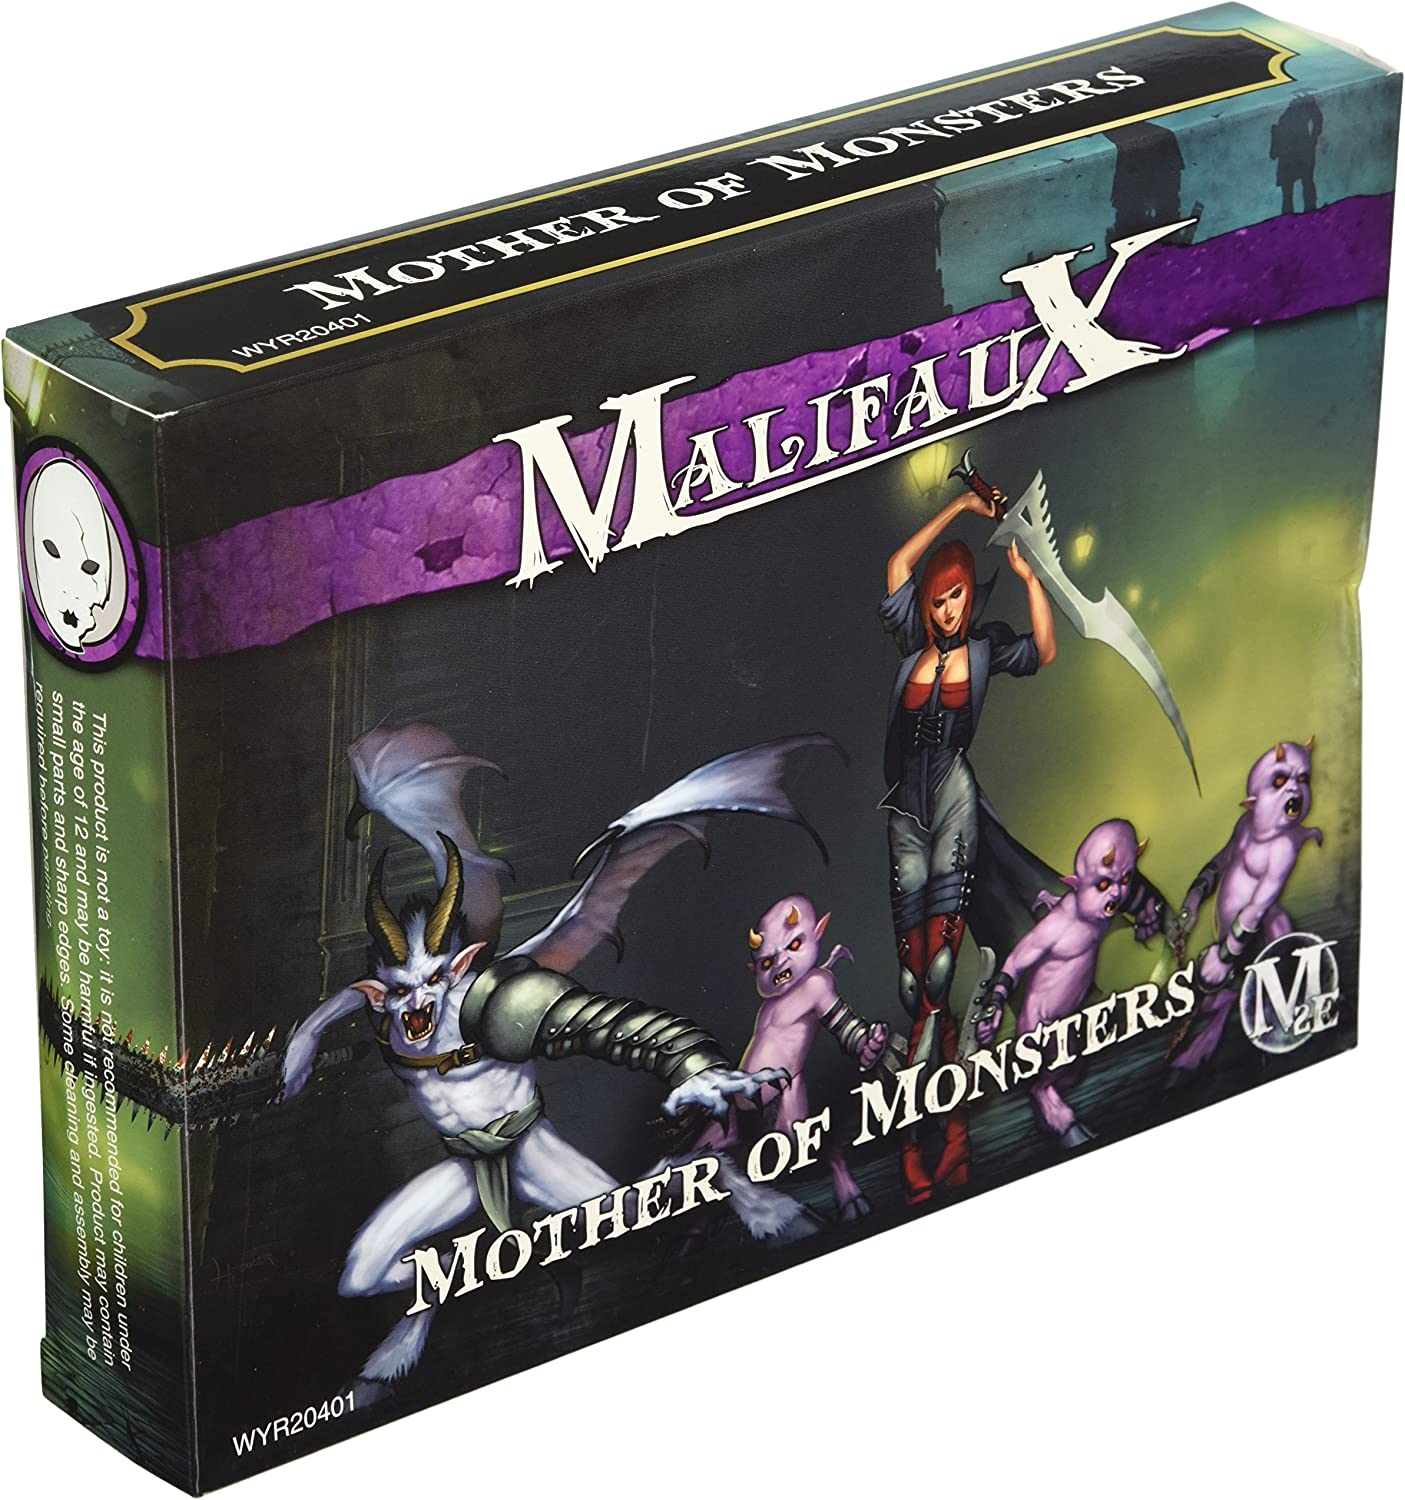 Wurd Miniaturen neverborn Mutter der Monster Crew Model Kit B00GFIO9I0 Spaß für Kinder     | Verkaufspreis